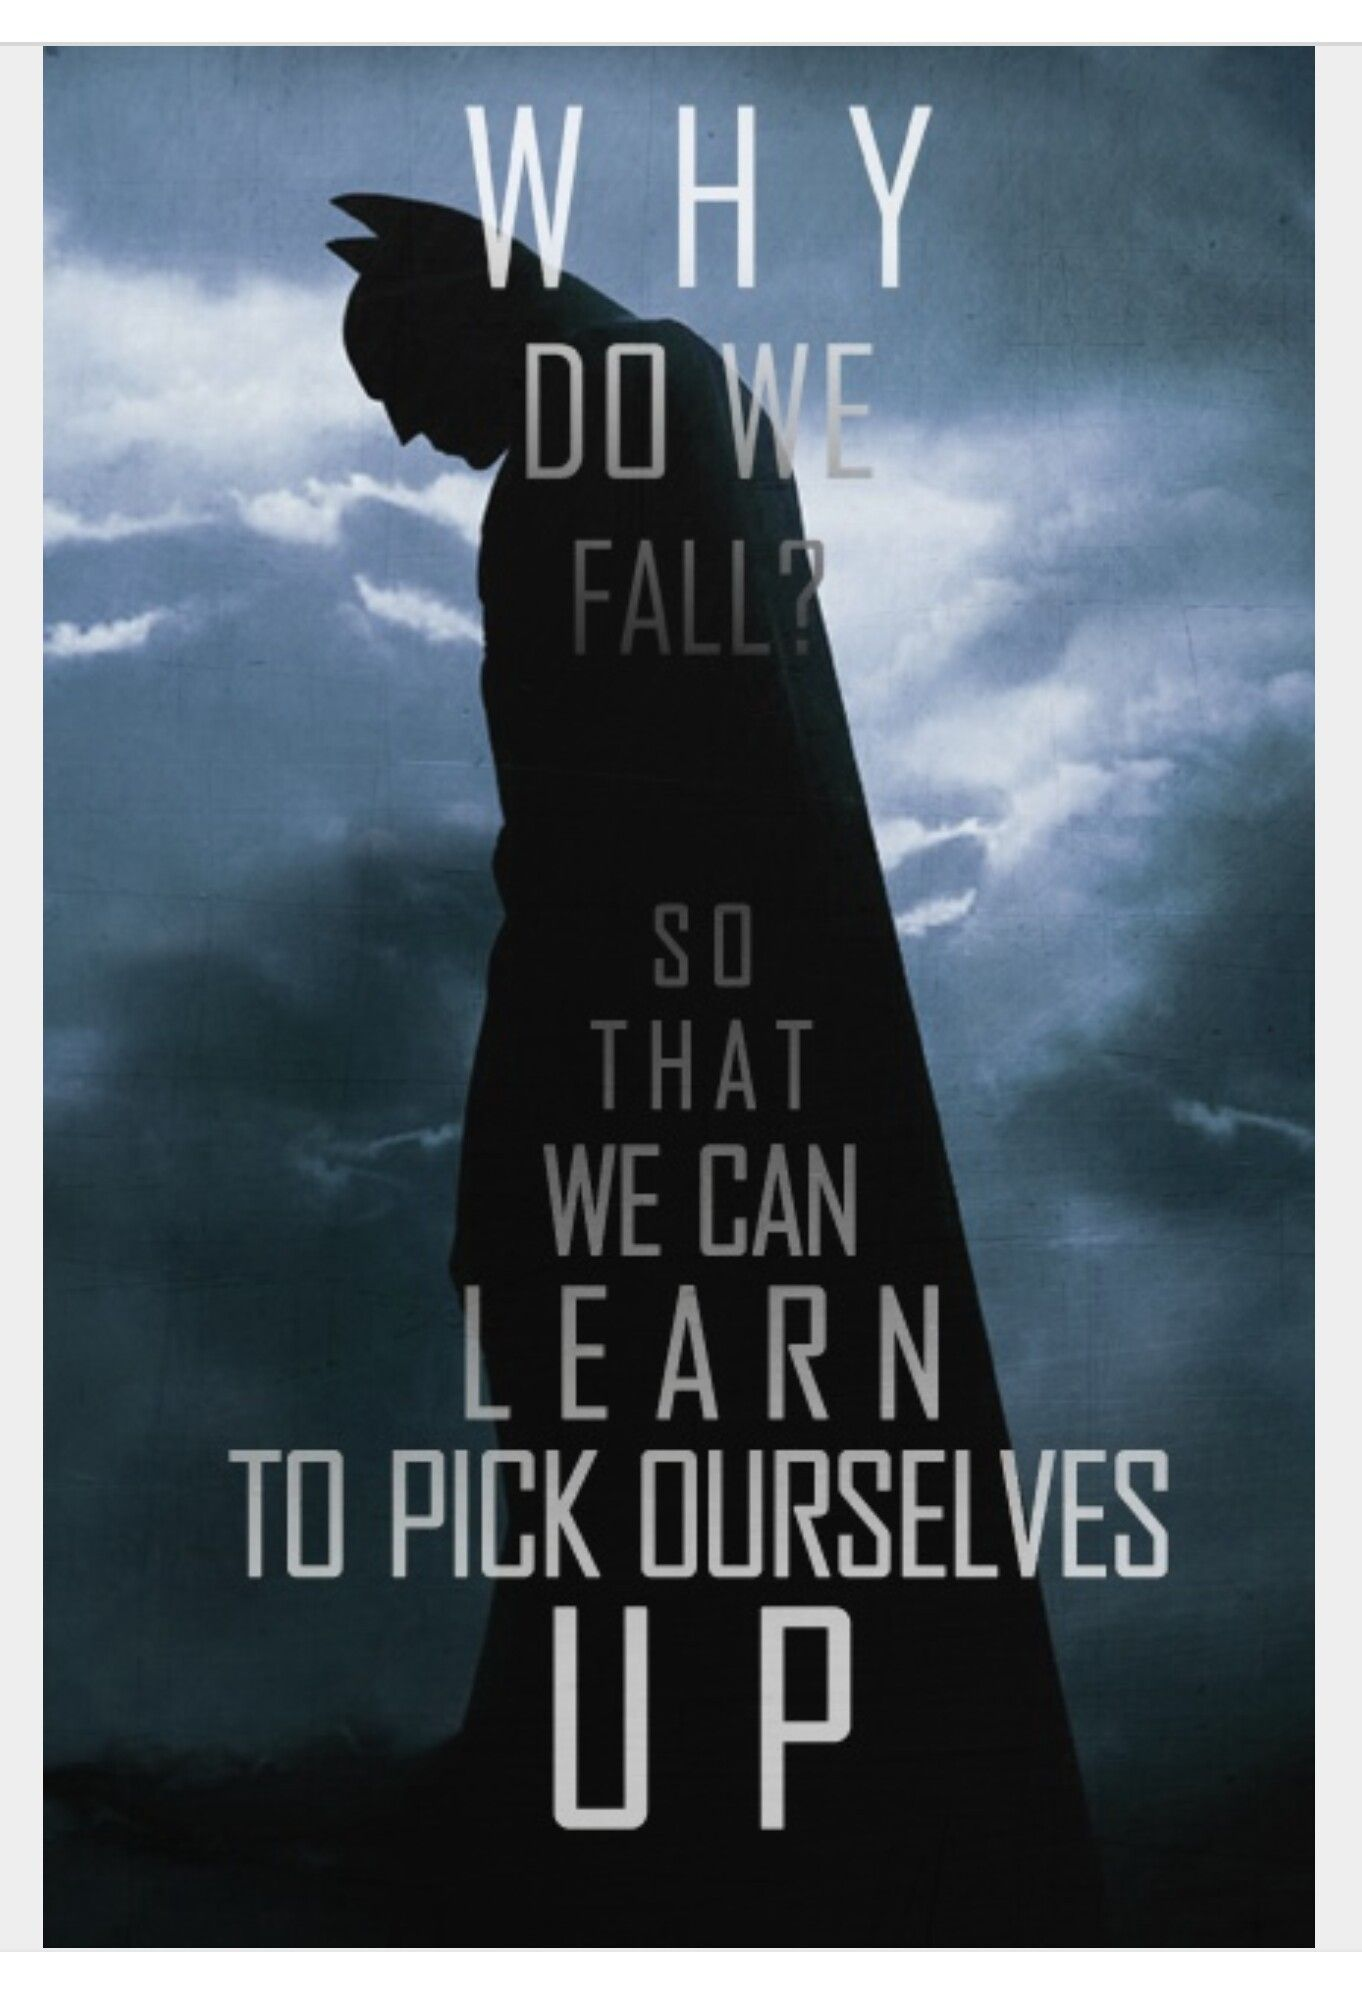 Batman Why Do We Fall Wallpaper Pin By James Choo On Batman Batman Quotes Famous Film